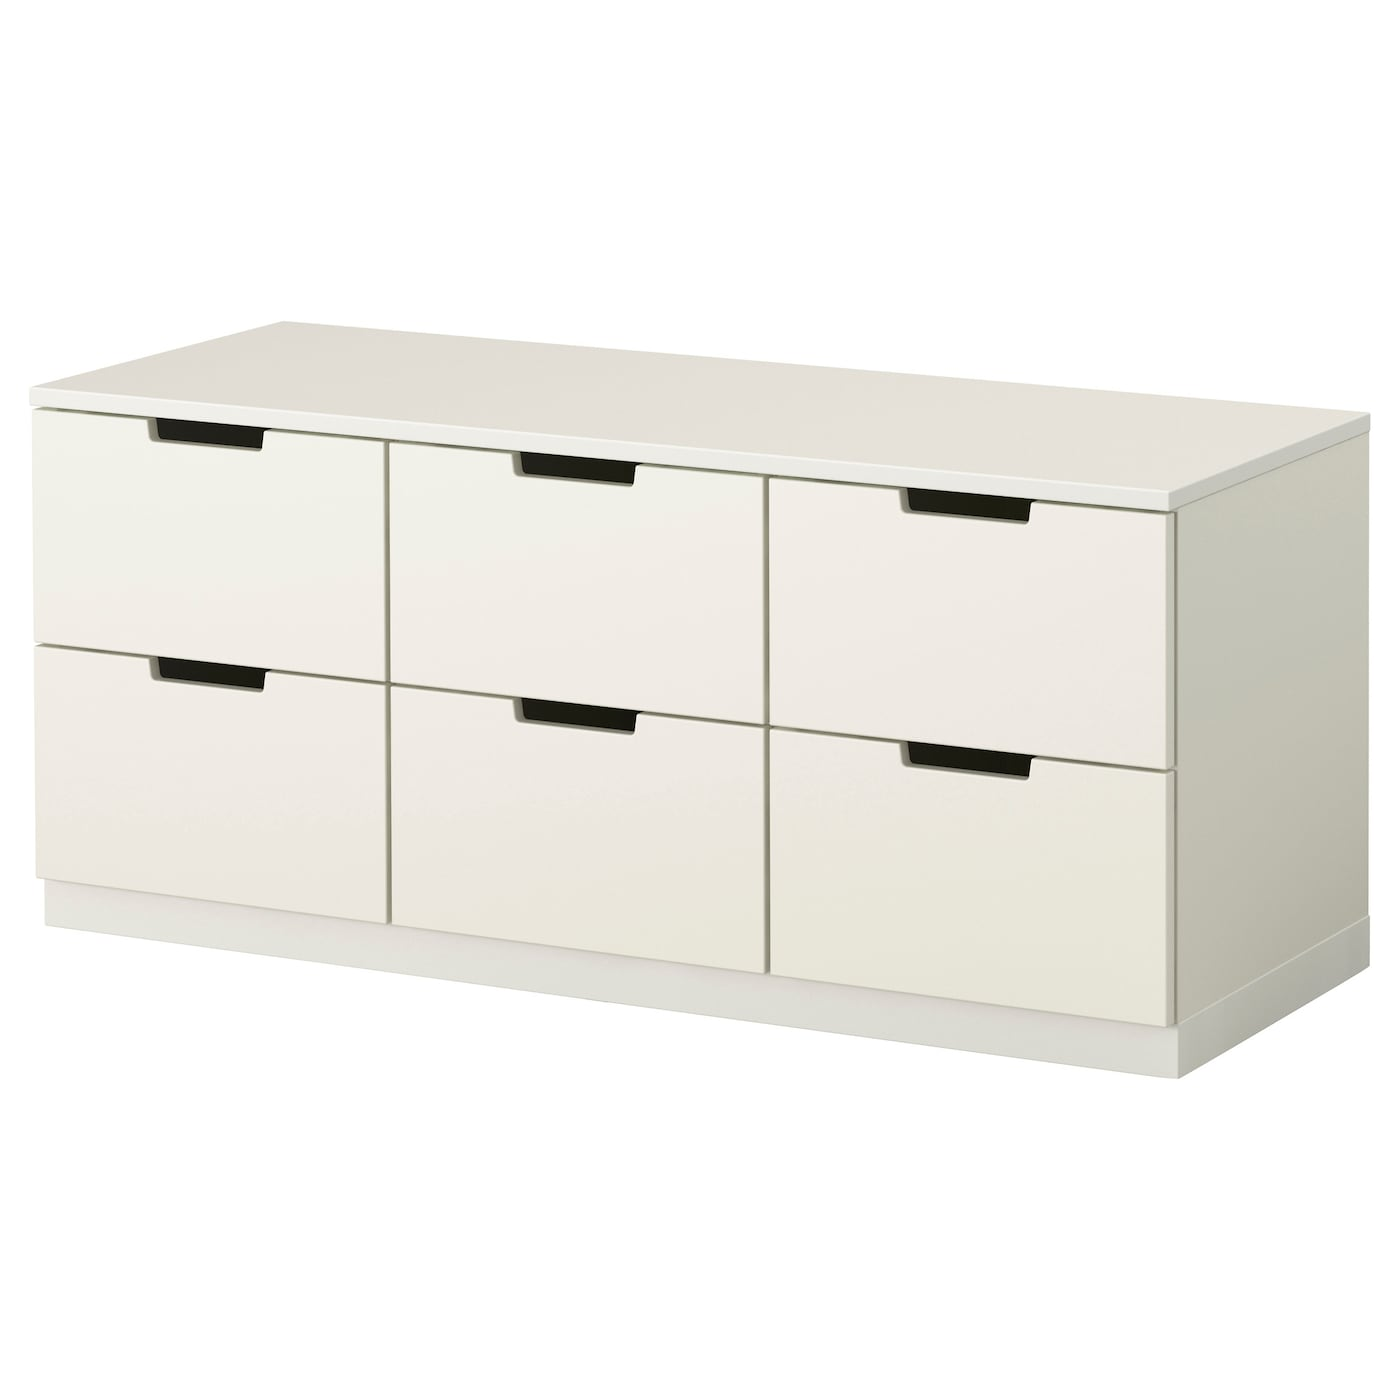 ikea 6 drawer dresser white bestdressers 2017. Black Bedroom Furniture Sets. Home Design Ideas